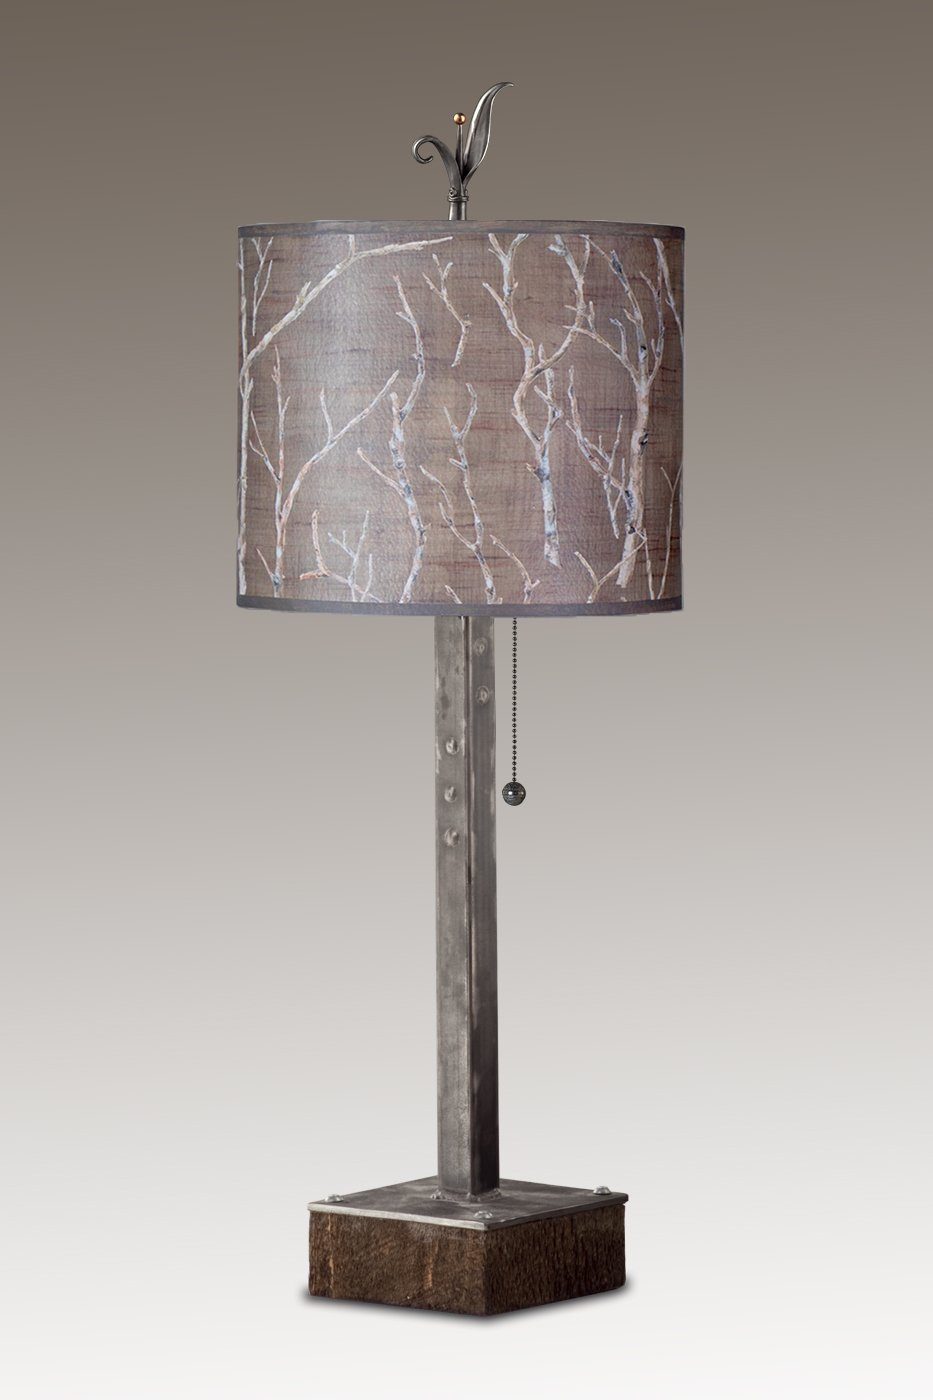 Steel Table Lamp on Reclaimed Wood Base with Small Oval Shade in Twigs